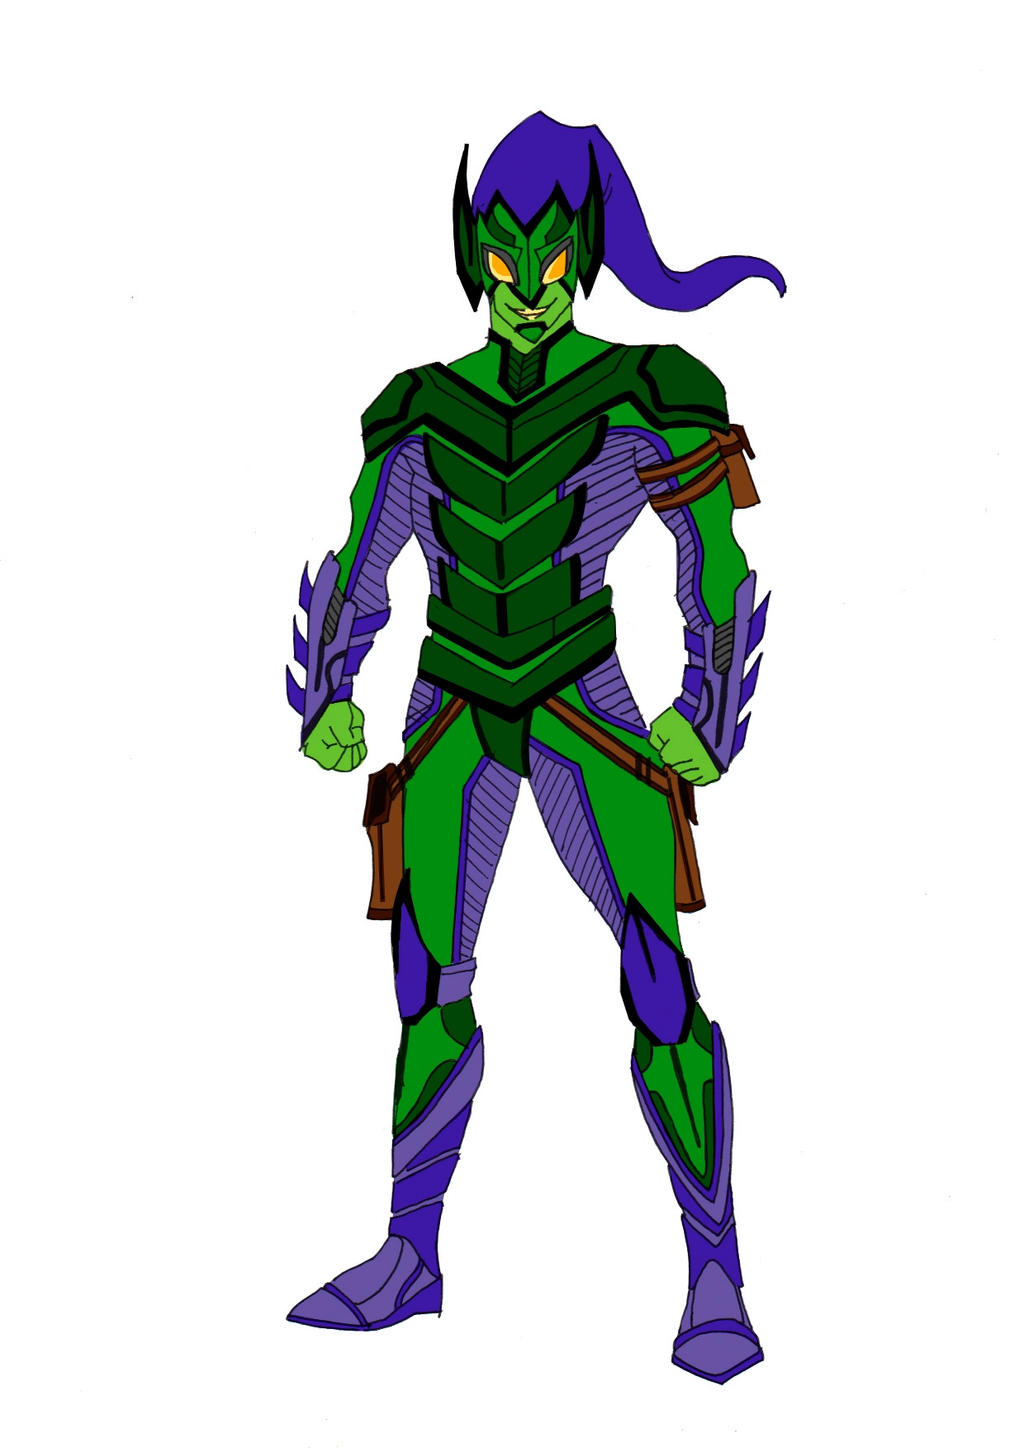 Green Goblin Redesign! by Comicbookguy54321